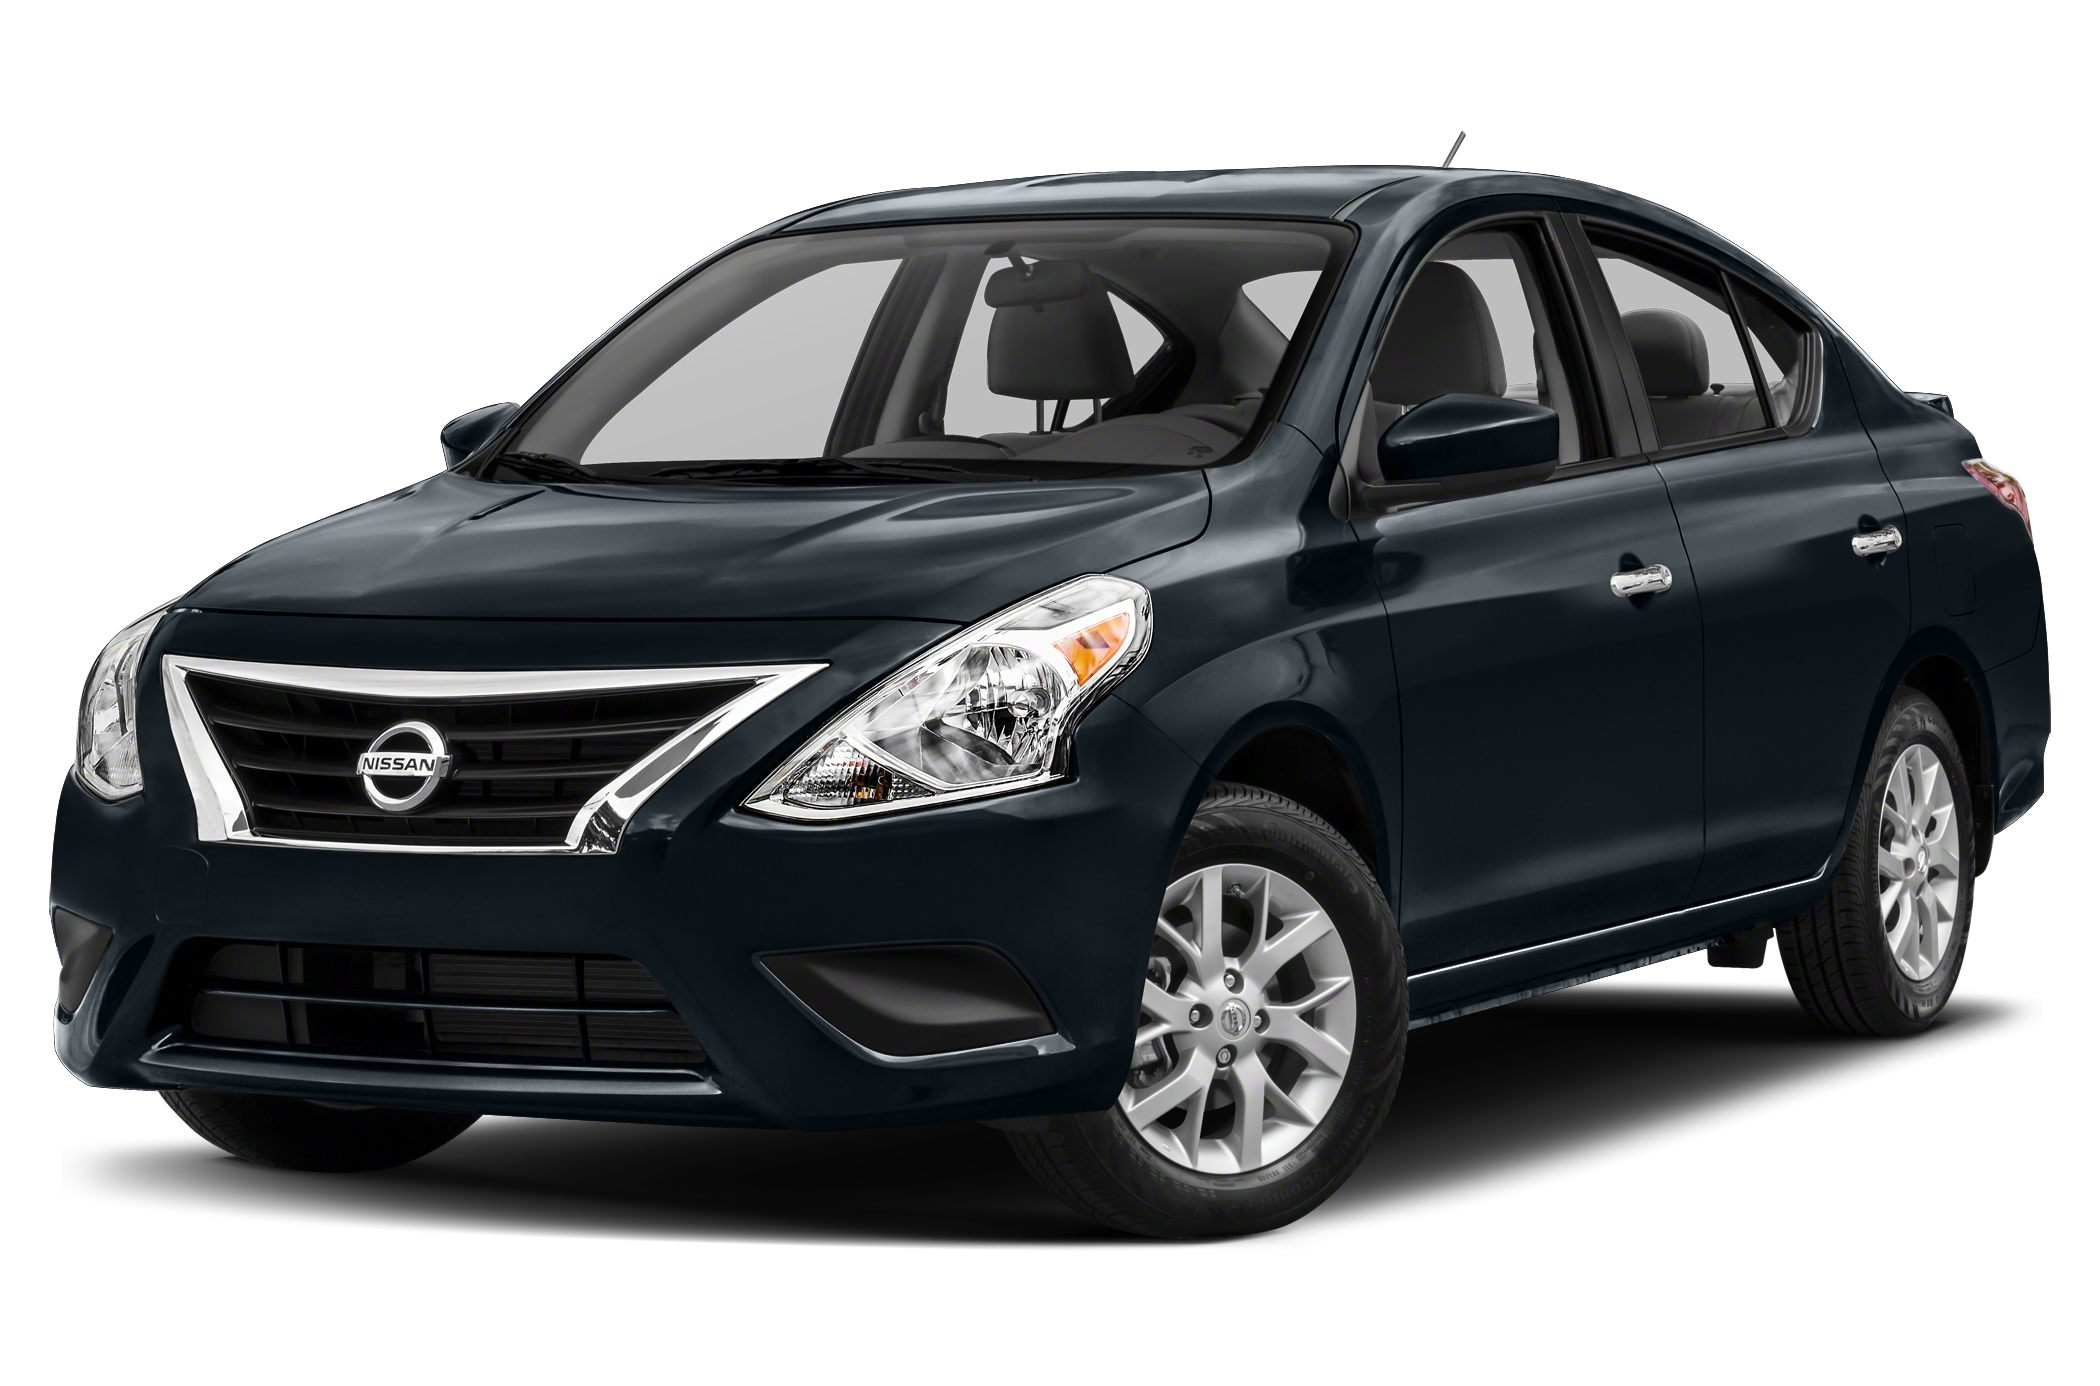 2016 Nissan Versa 16 SV Priced to sell 2396 below MSRP -Great Gas Mileage- This 2016 Nissan V